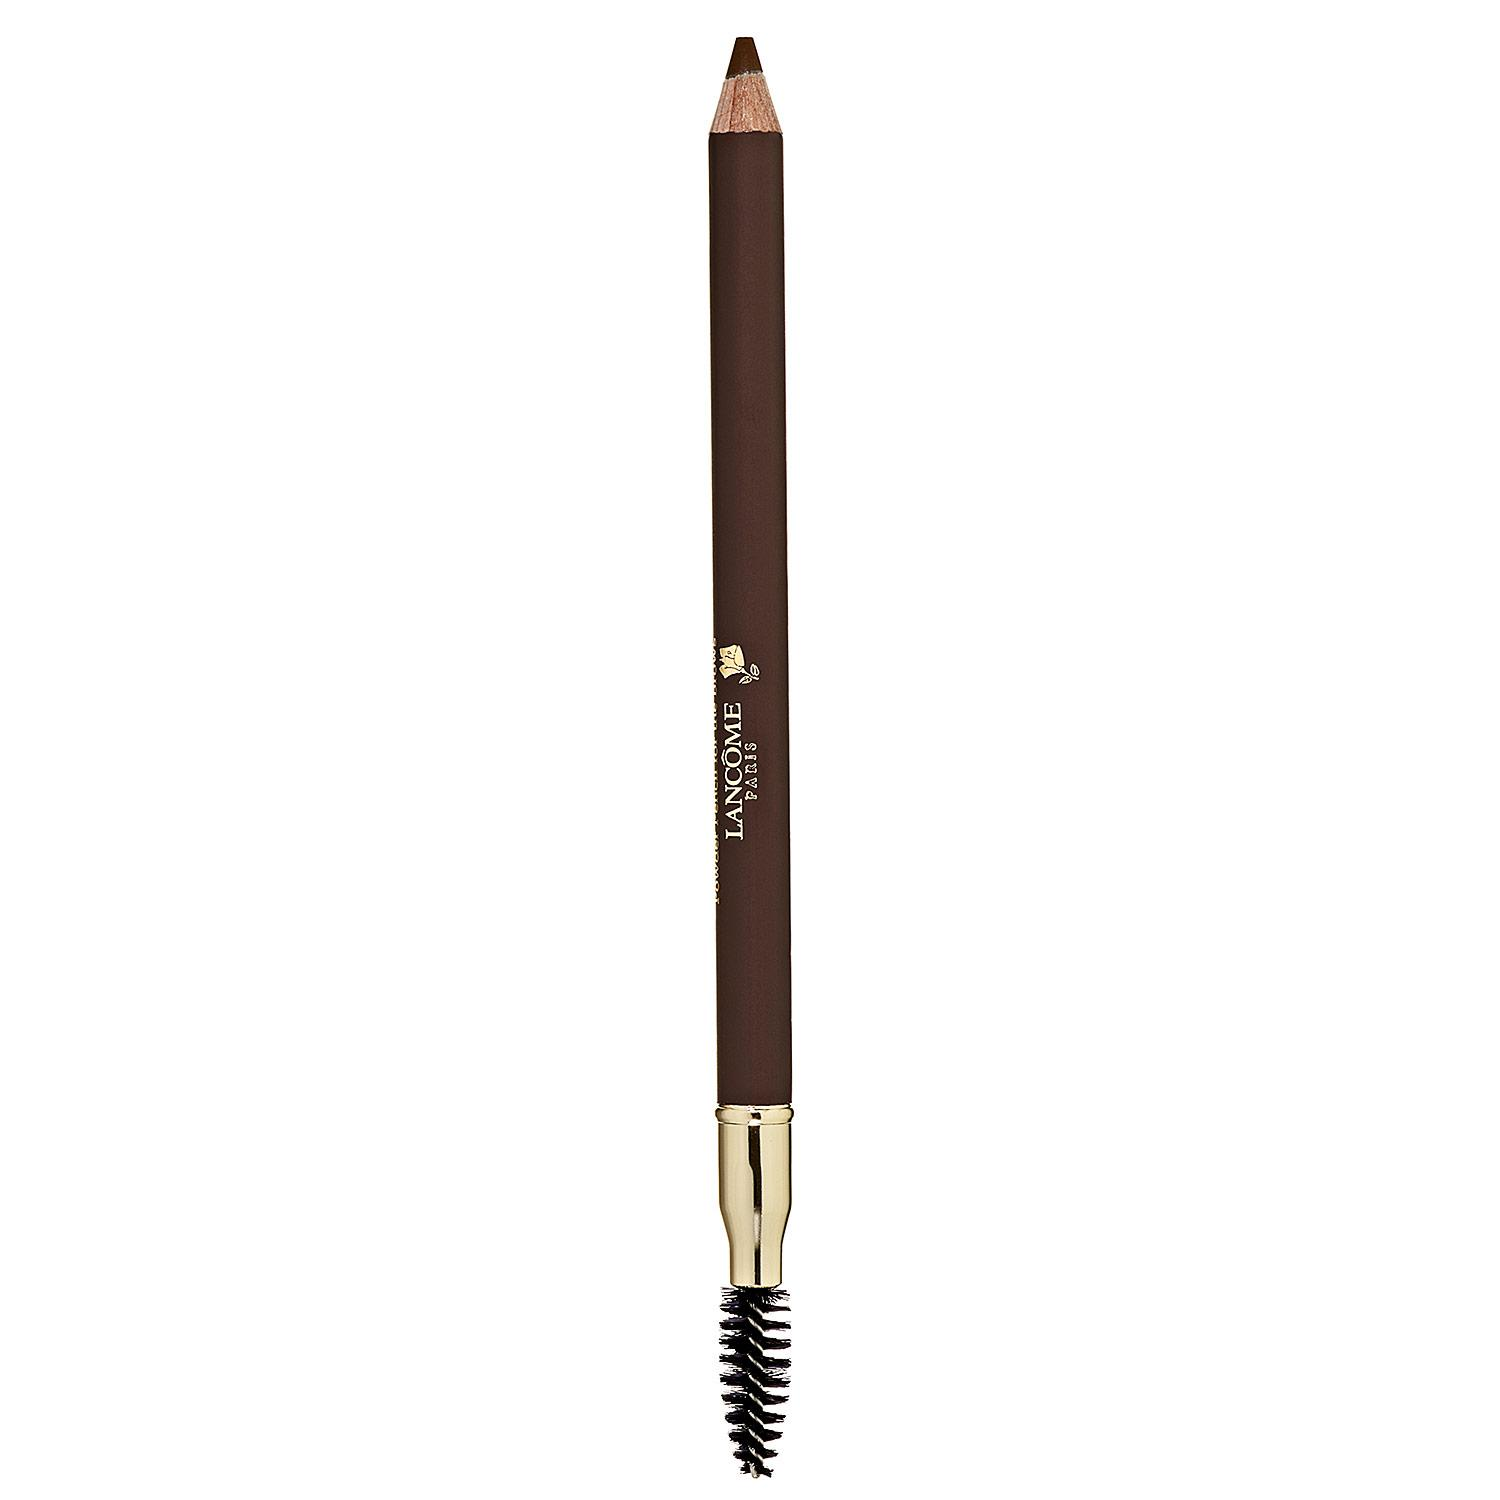 LE CRAYON POUDRE - Powder Pencil for the Brows